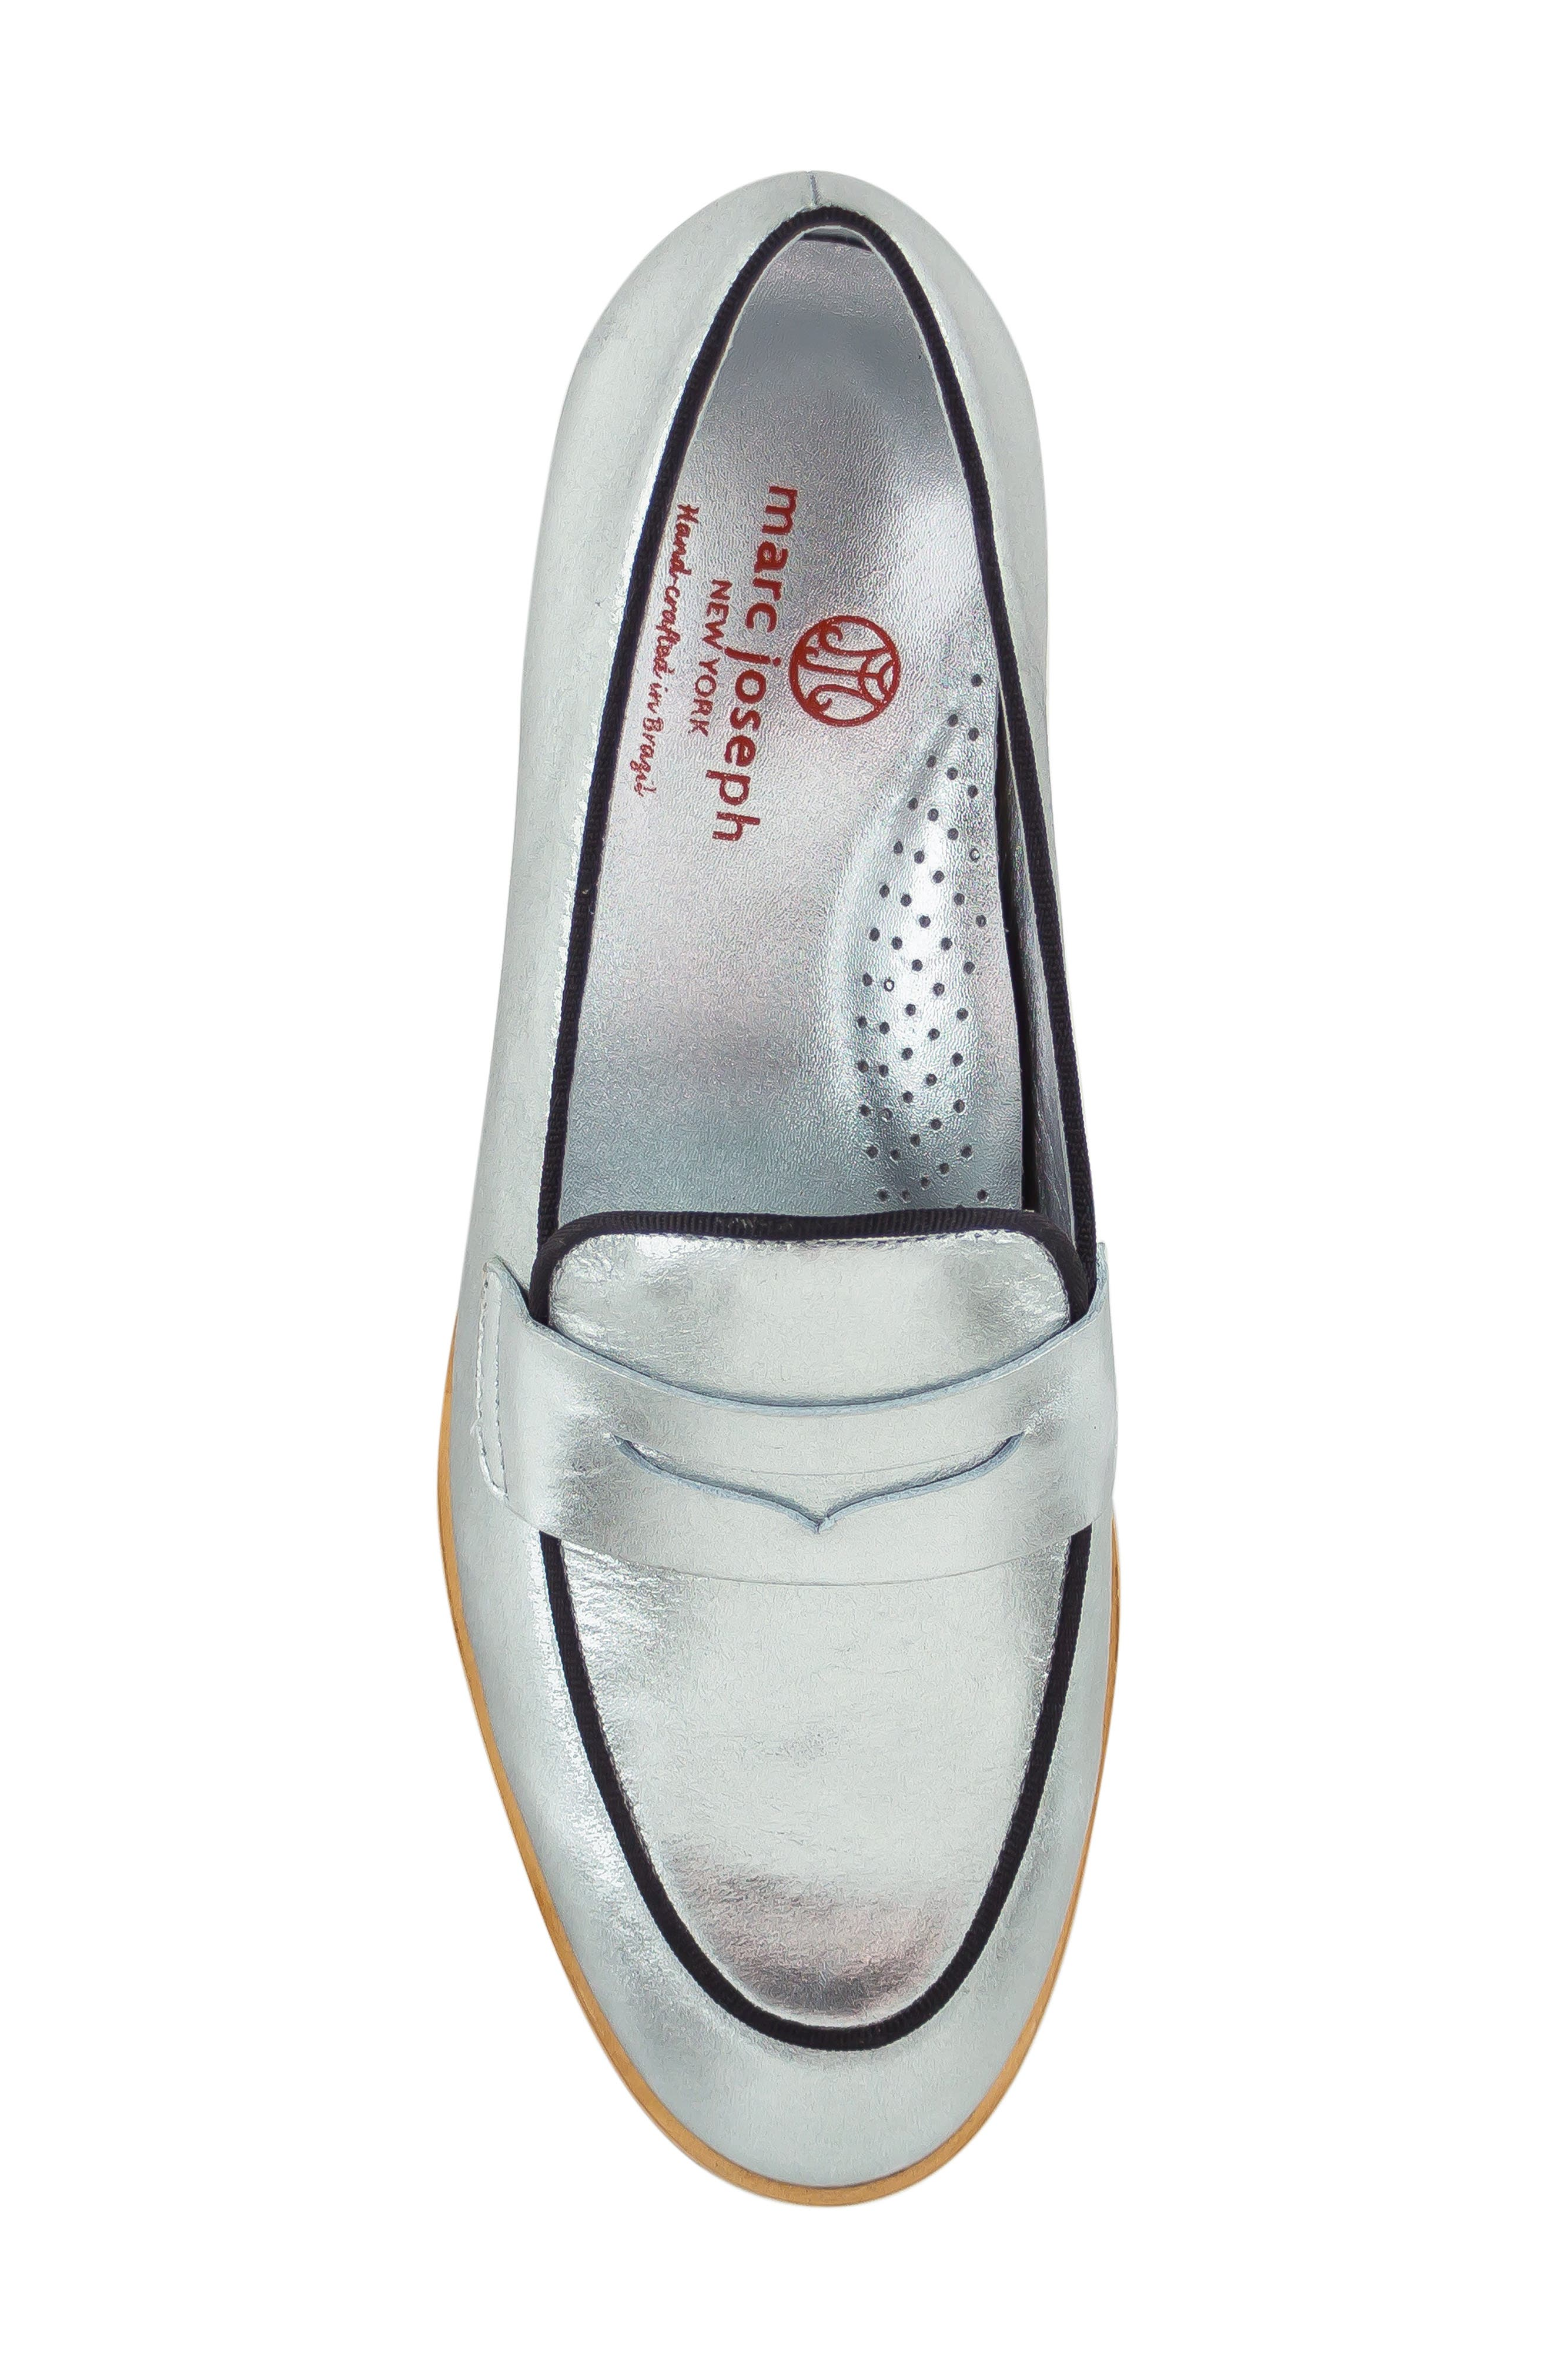 Bryant Park Loafer,                             Alternate thumbnail 5, color,                             GIPSY SILVER LEATHER